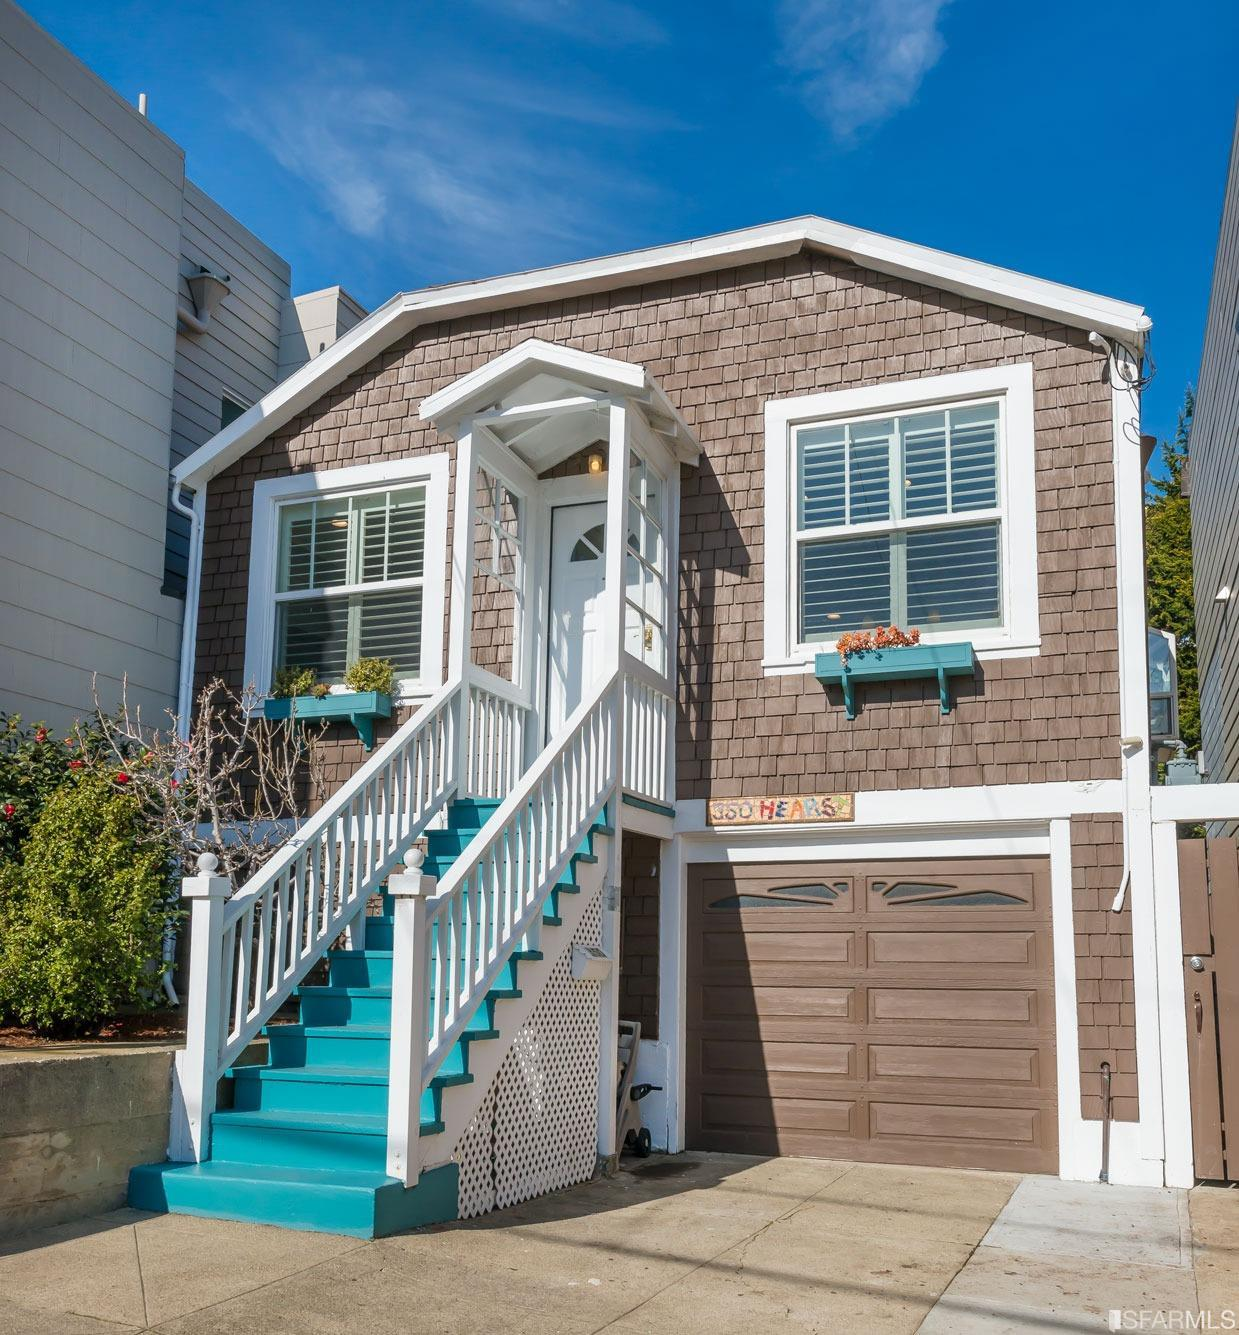 San Francisco Houses For Rent: San Francisco's Most And Least Expensive Homes This Week